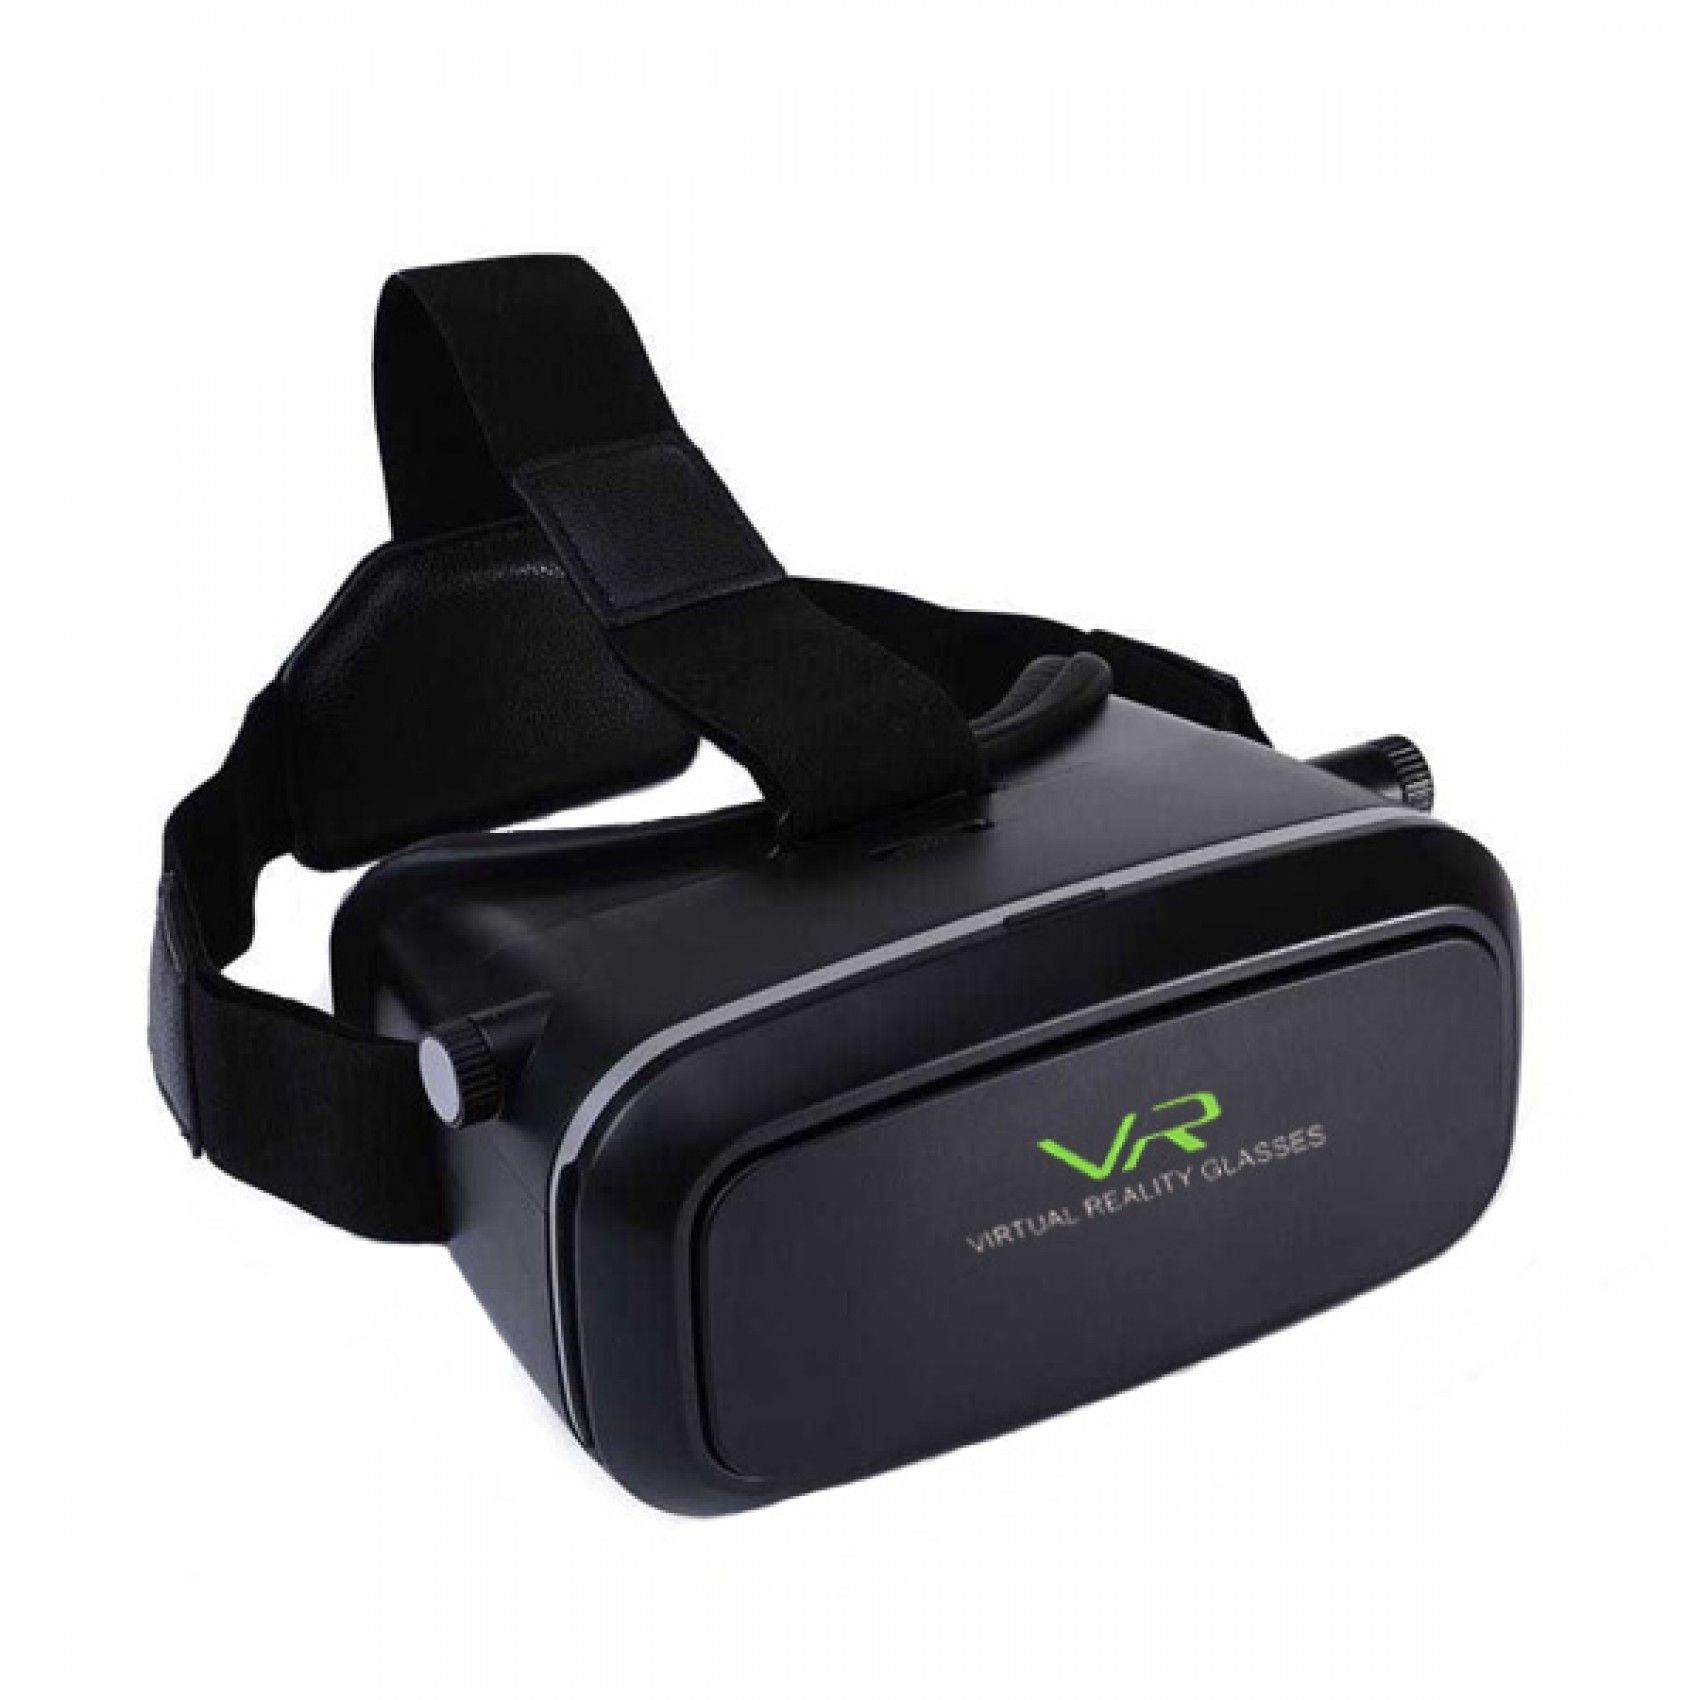 Shinecon 3D VR Virtual Reality Glasses For Gaming Movies And